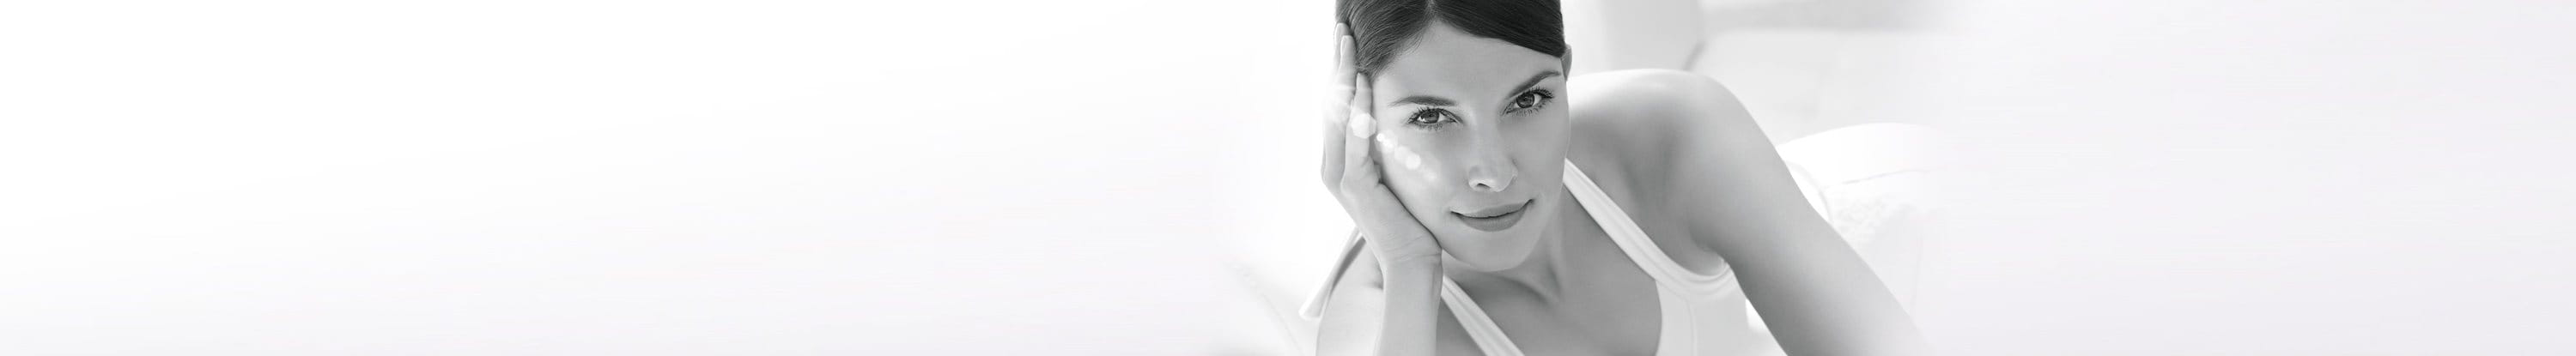 Woman using Eucerin products